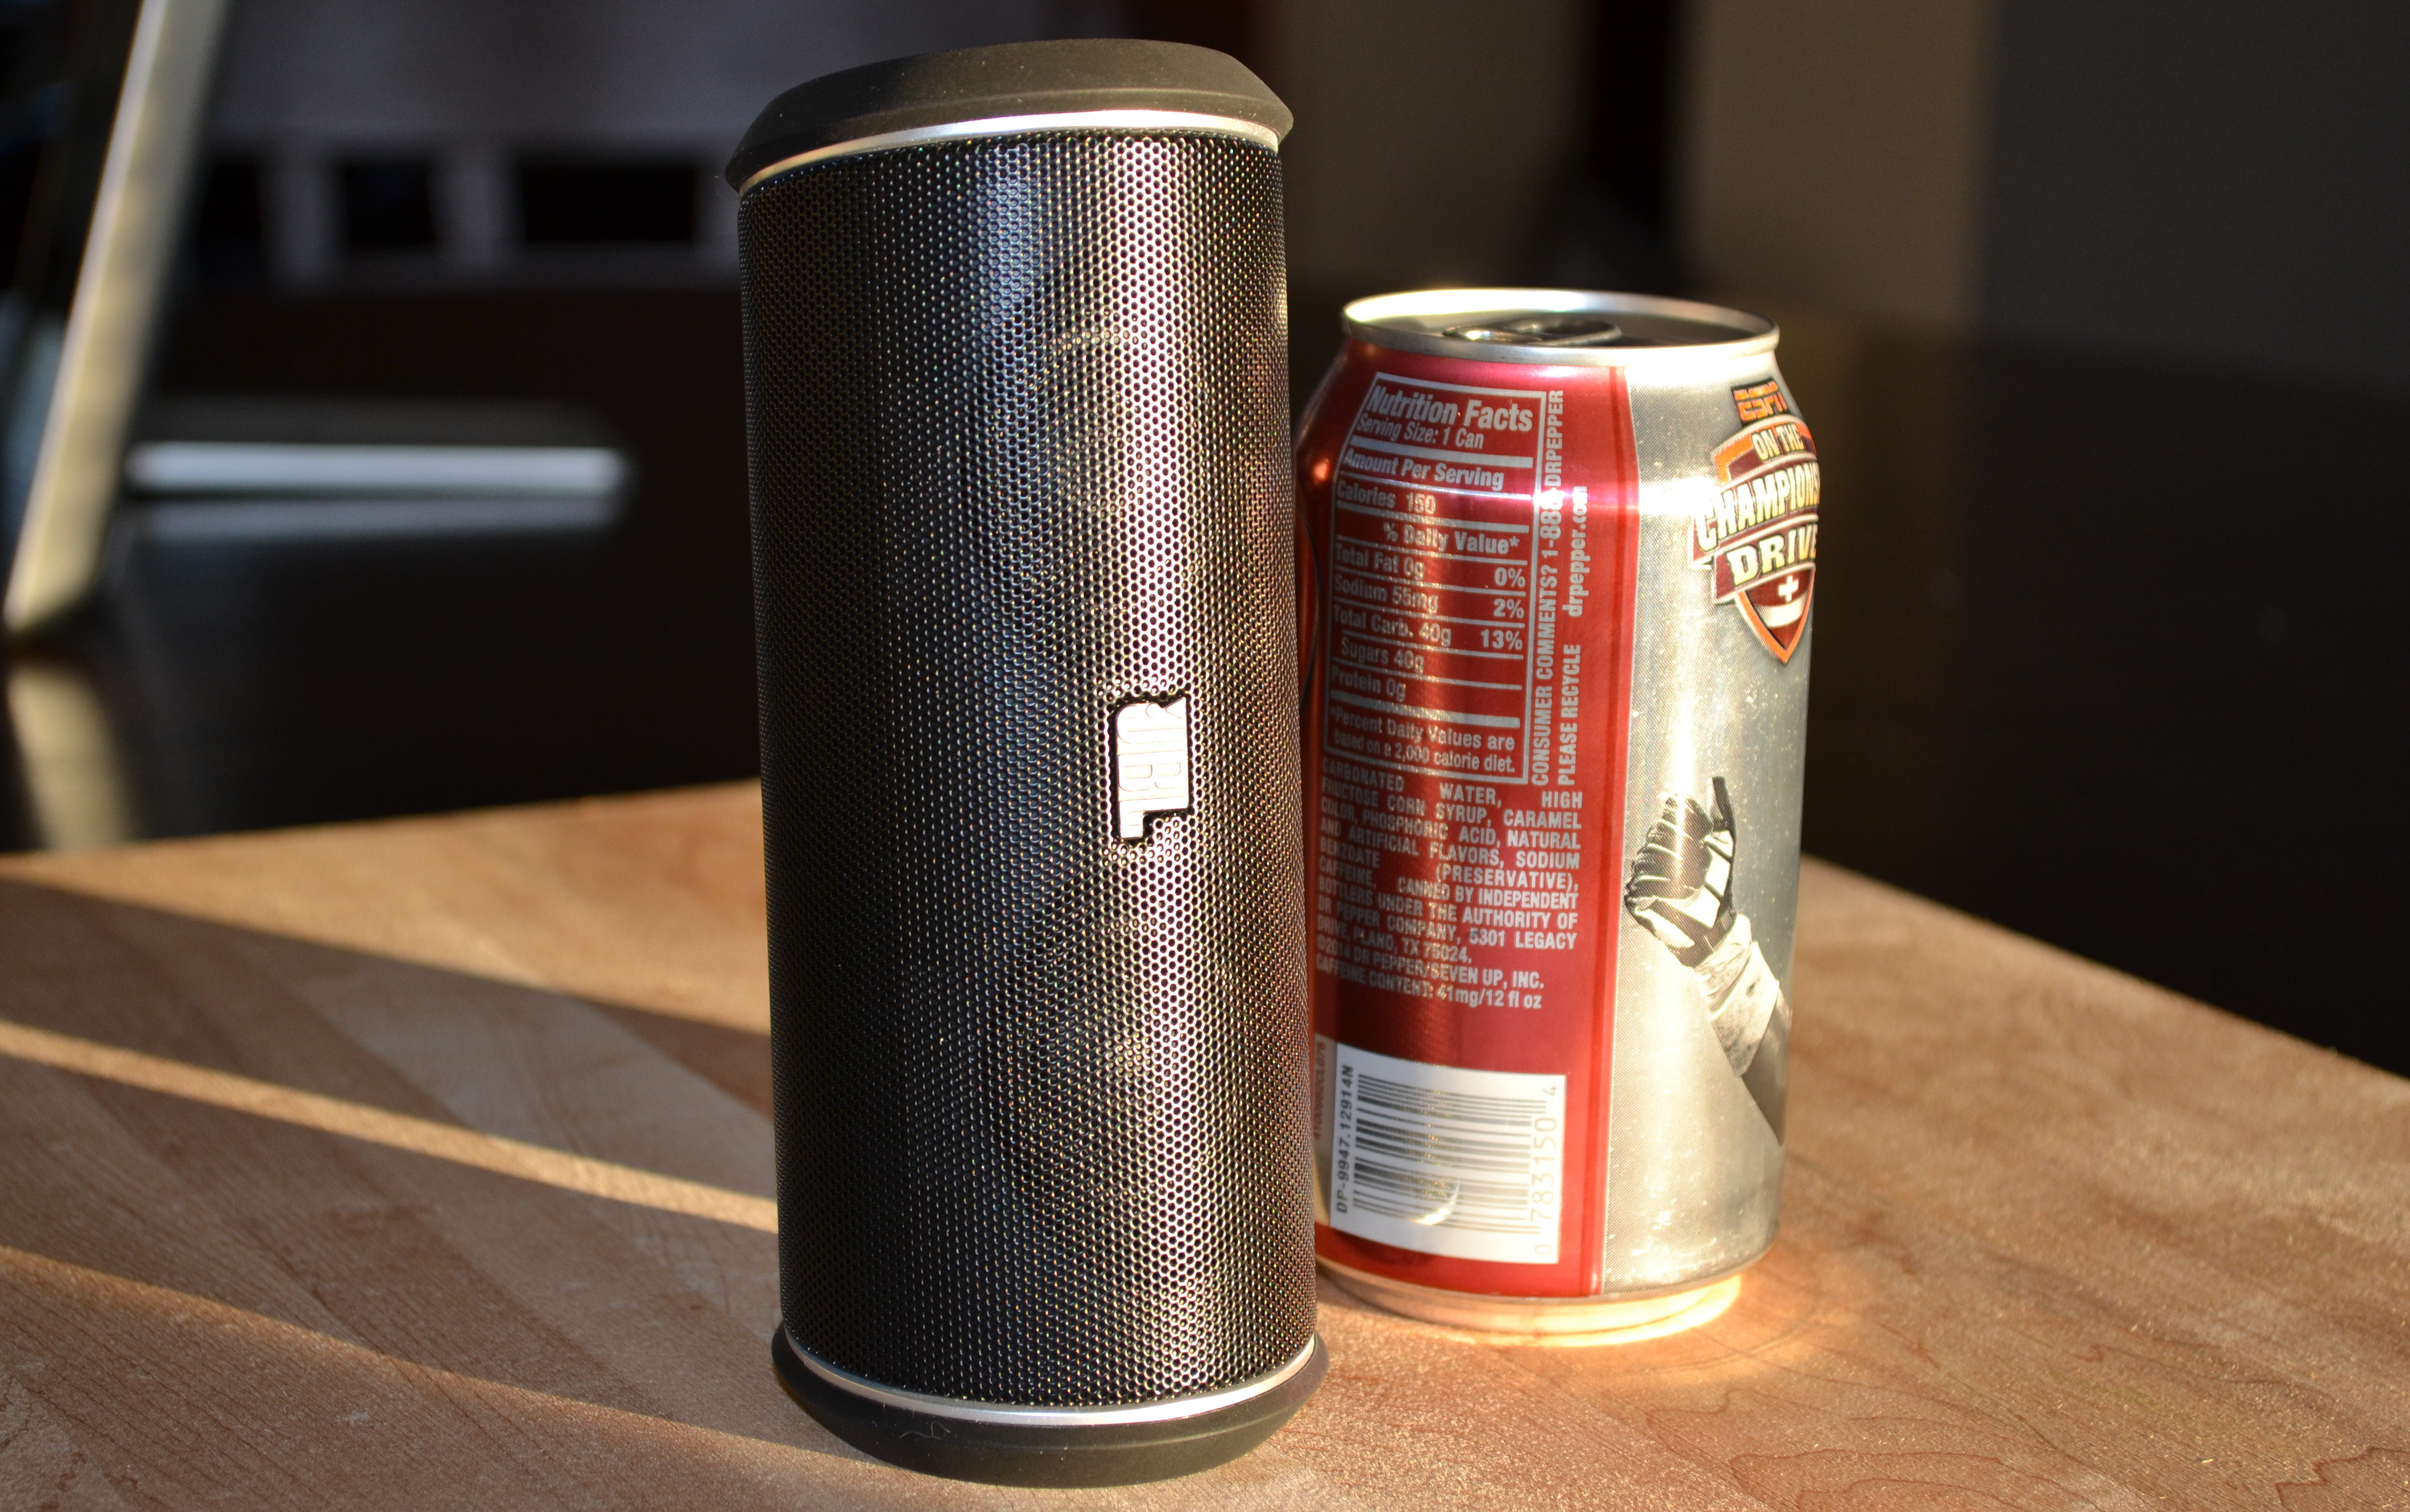 Jbl Flip 2 Speakers Are Small But Deliver Big Sound Dad Logic Clip Bluetooth Speaker Grey I Found That If A Call Comes In Can Use The As Phone It Even Has Microphone Built Into Which Was An Unexpected Surprise